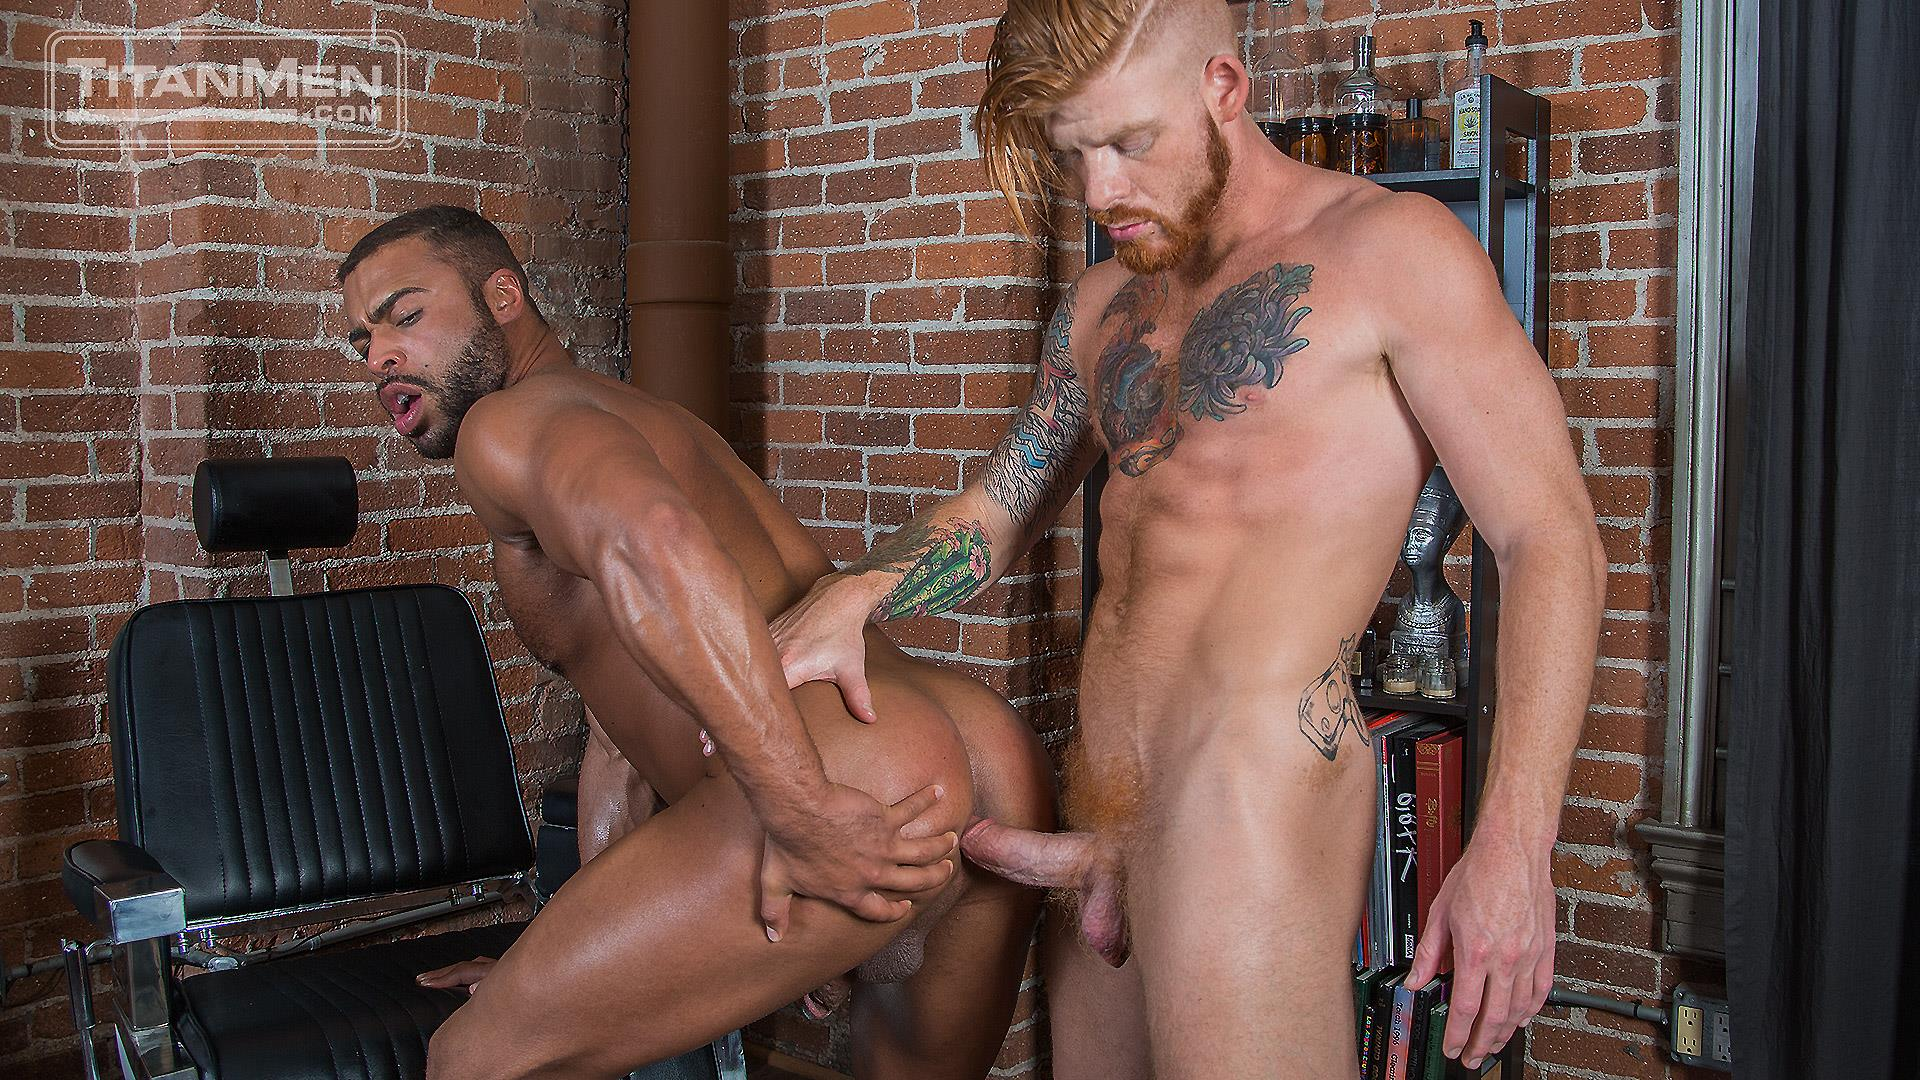 TitanMen Micah Brandt and Bennett Anthony Interracial Muscle Hunks Flip Fucking Amateur Gay Porn 22 Micah Brandt and Bennett Anthony Flip Fucking With Their Big Dicks